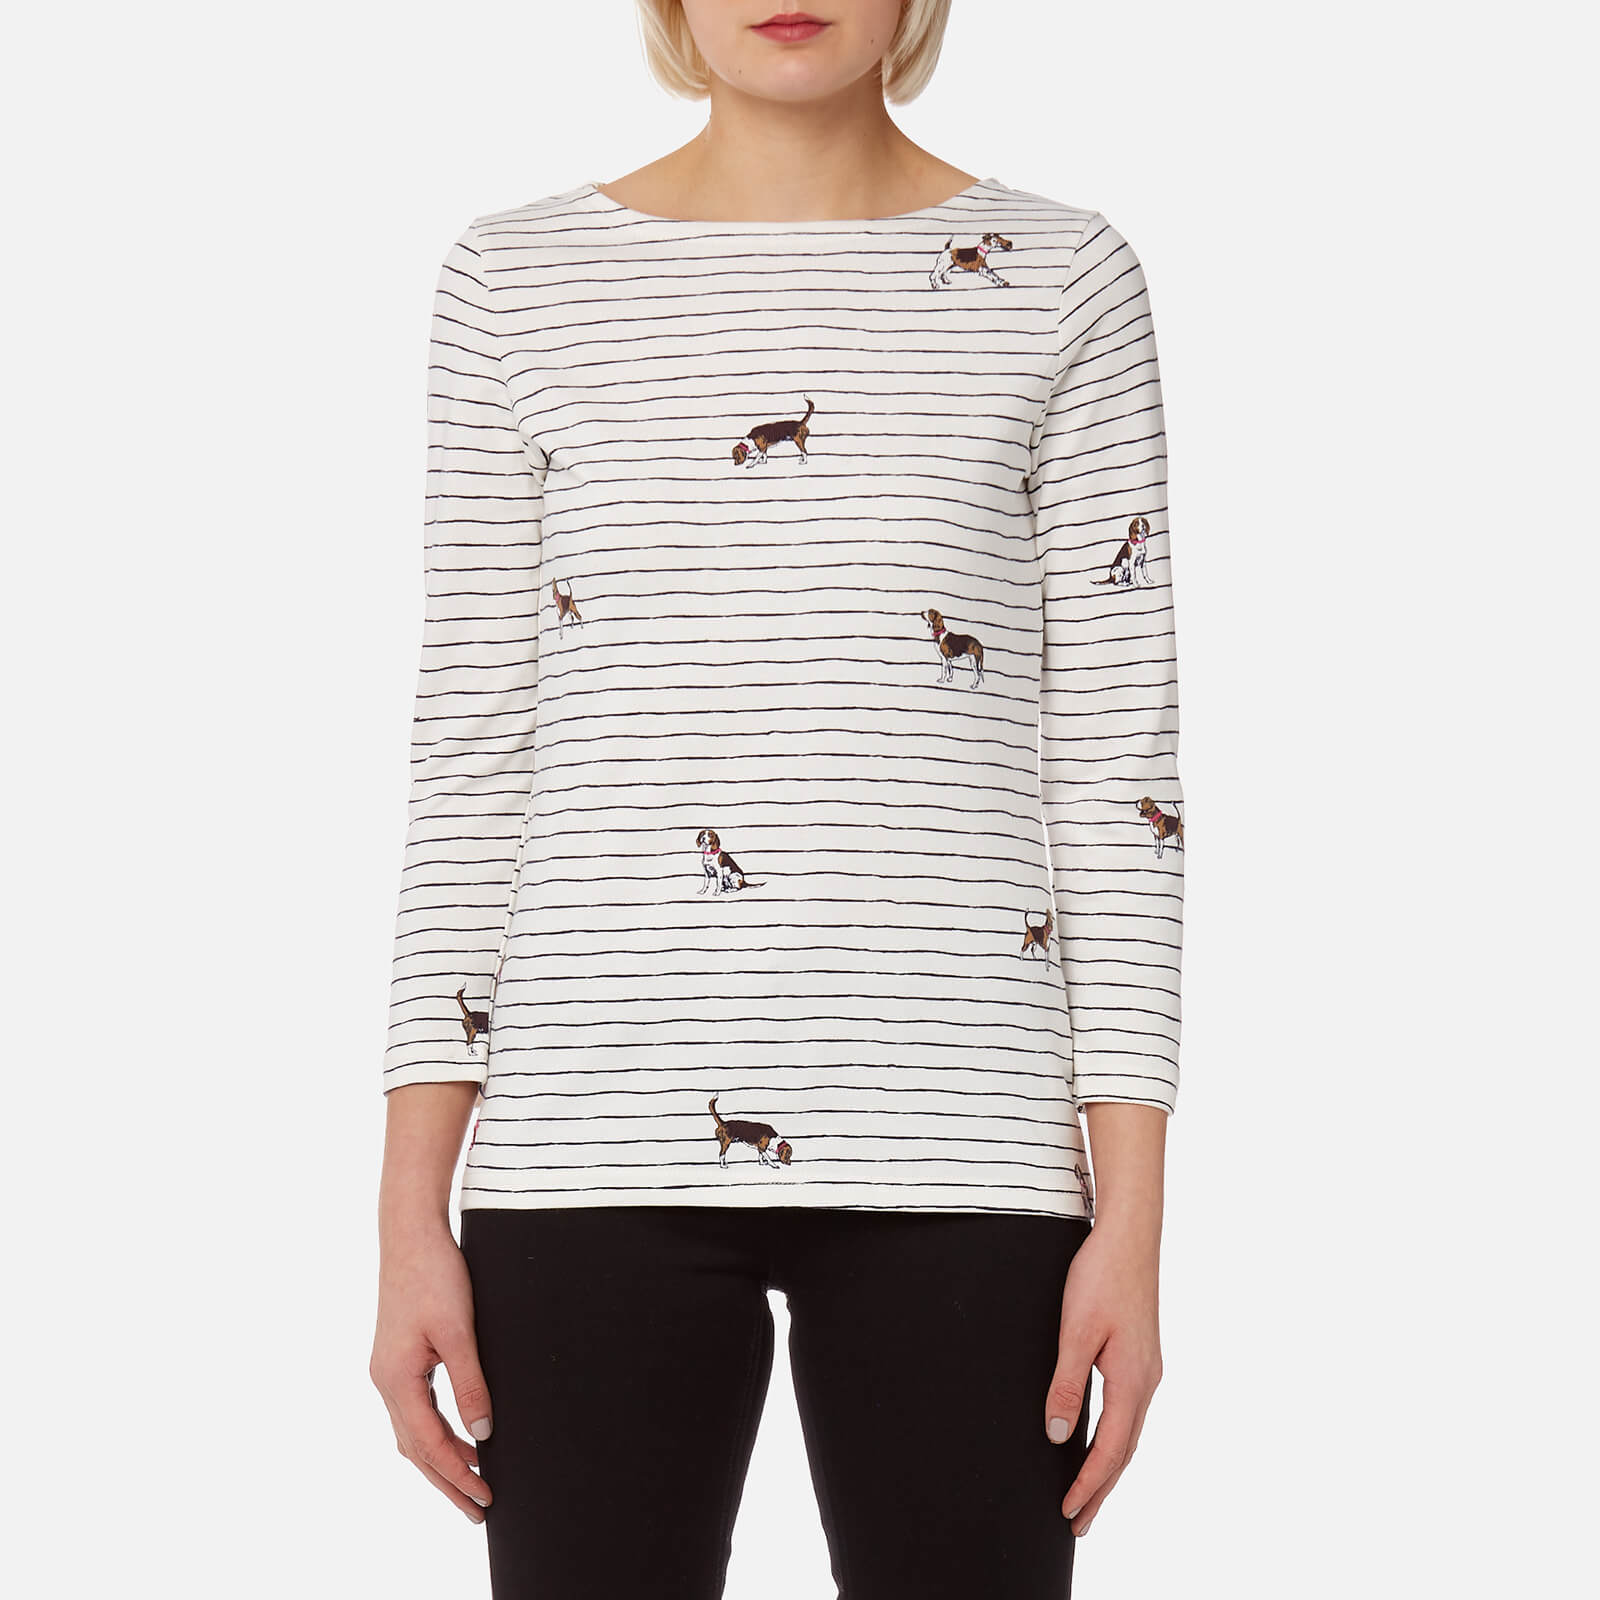 Joules Harbour Print Jersey Top Cream Dog Stripe Size 8